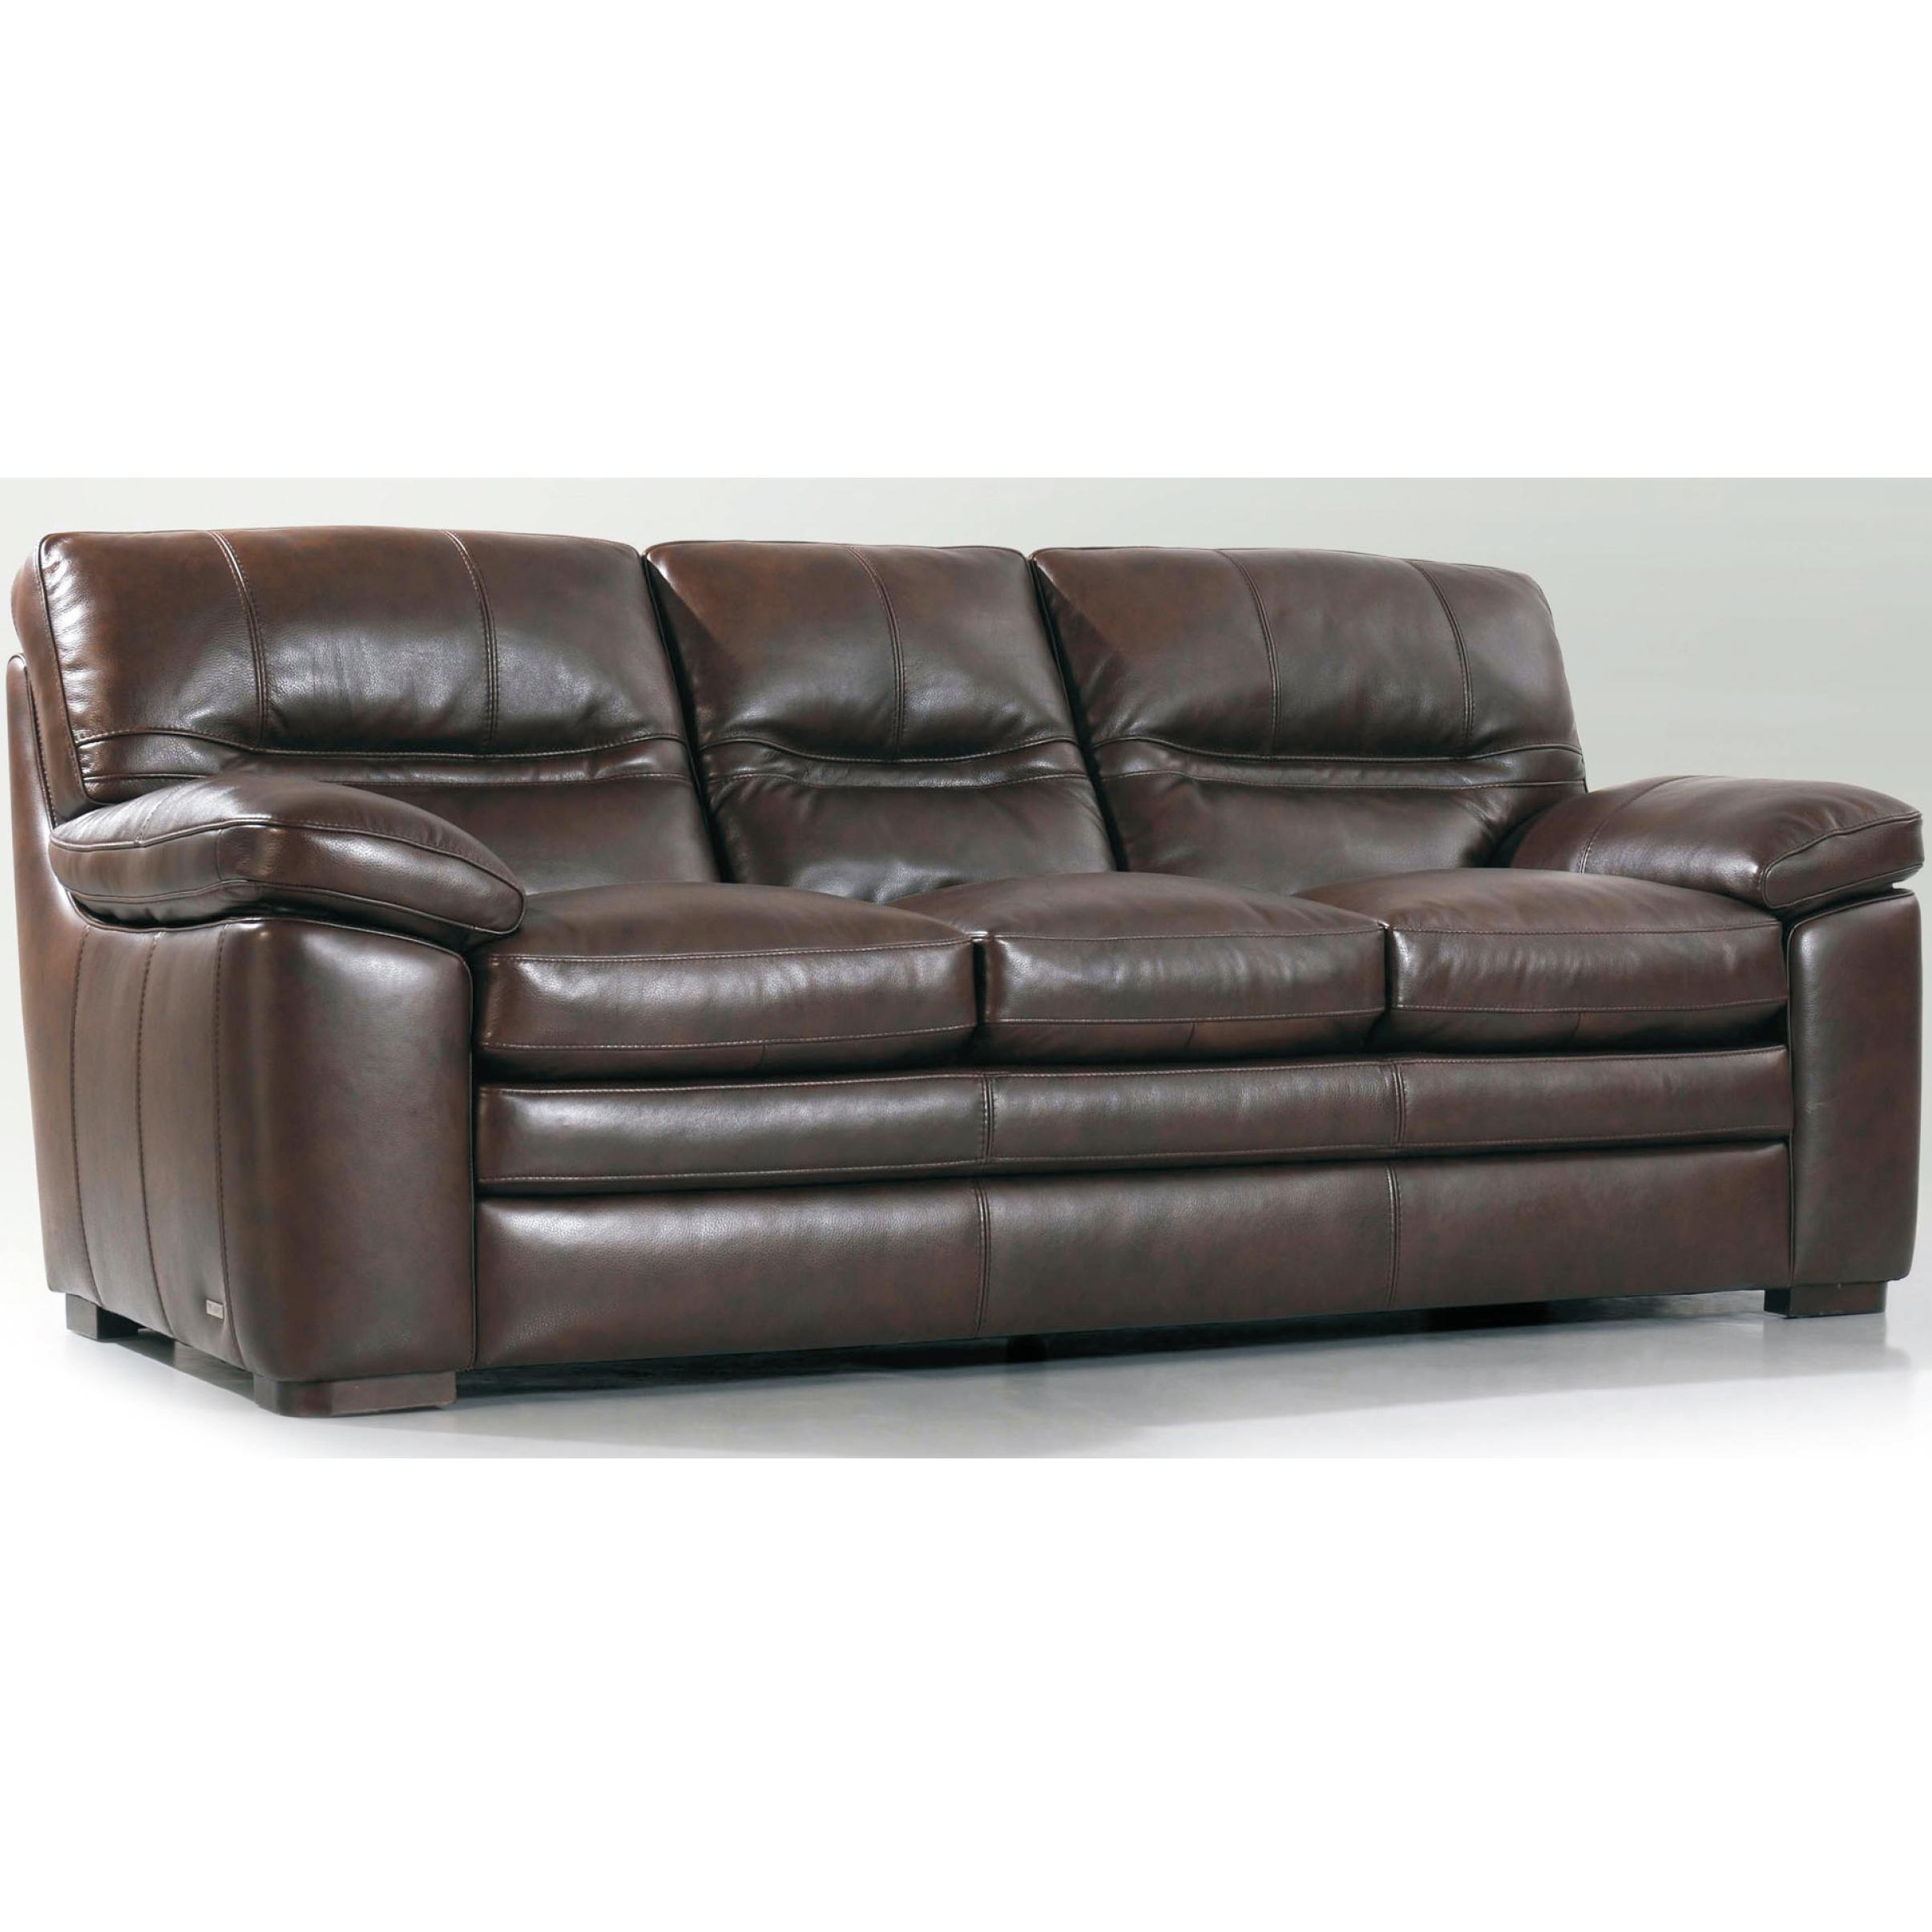 Violino 3574 Casual Sofa With Split Back And Pillow Top Arms